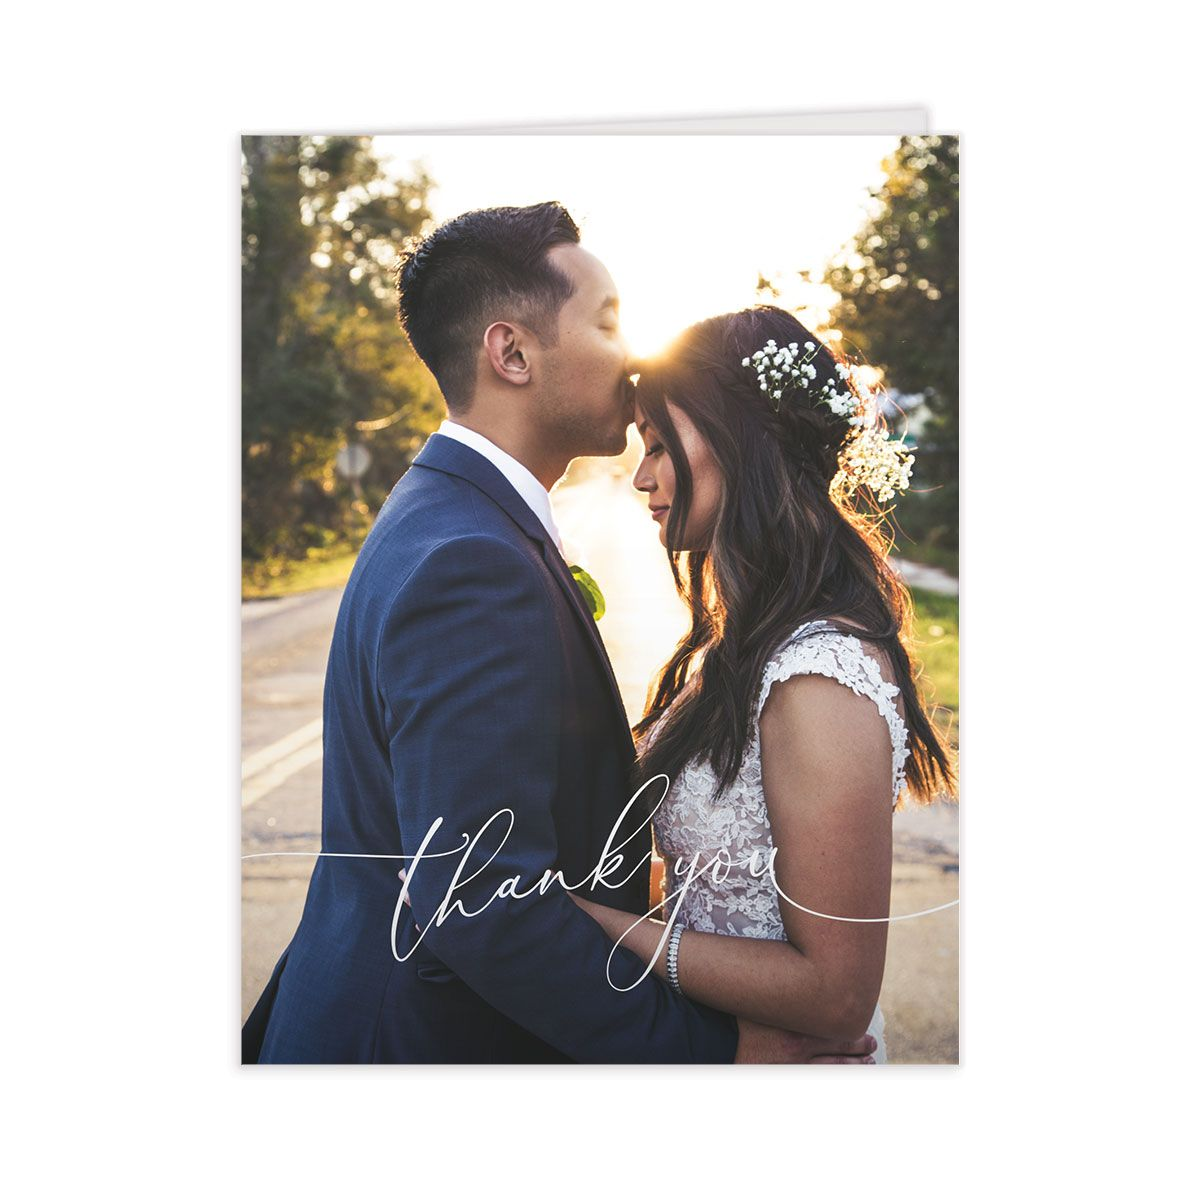 Romantic Calligraphy photo thank you cards in grey